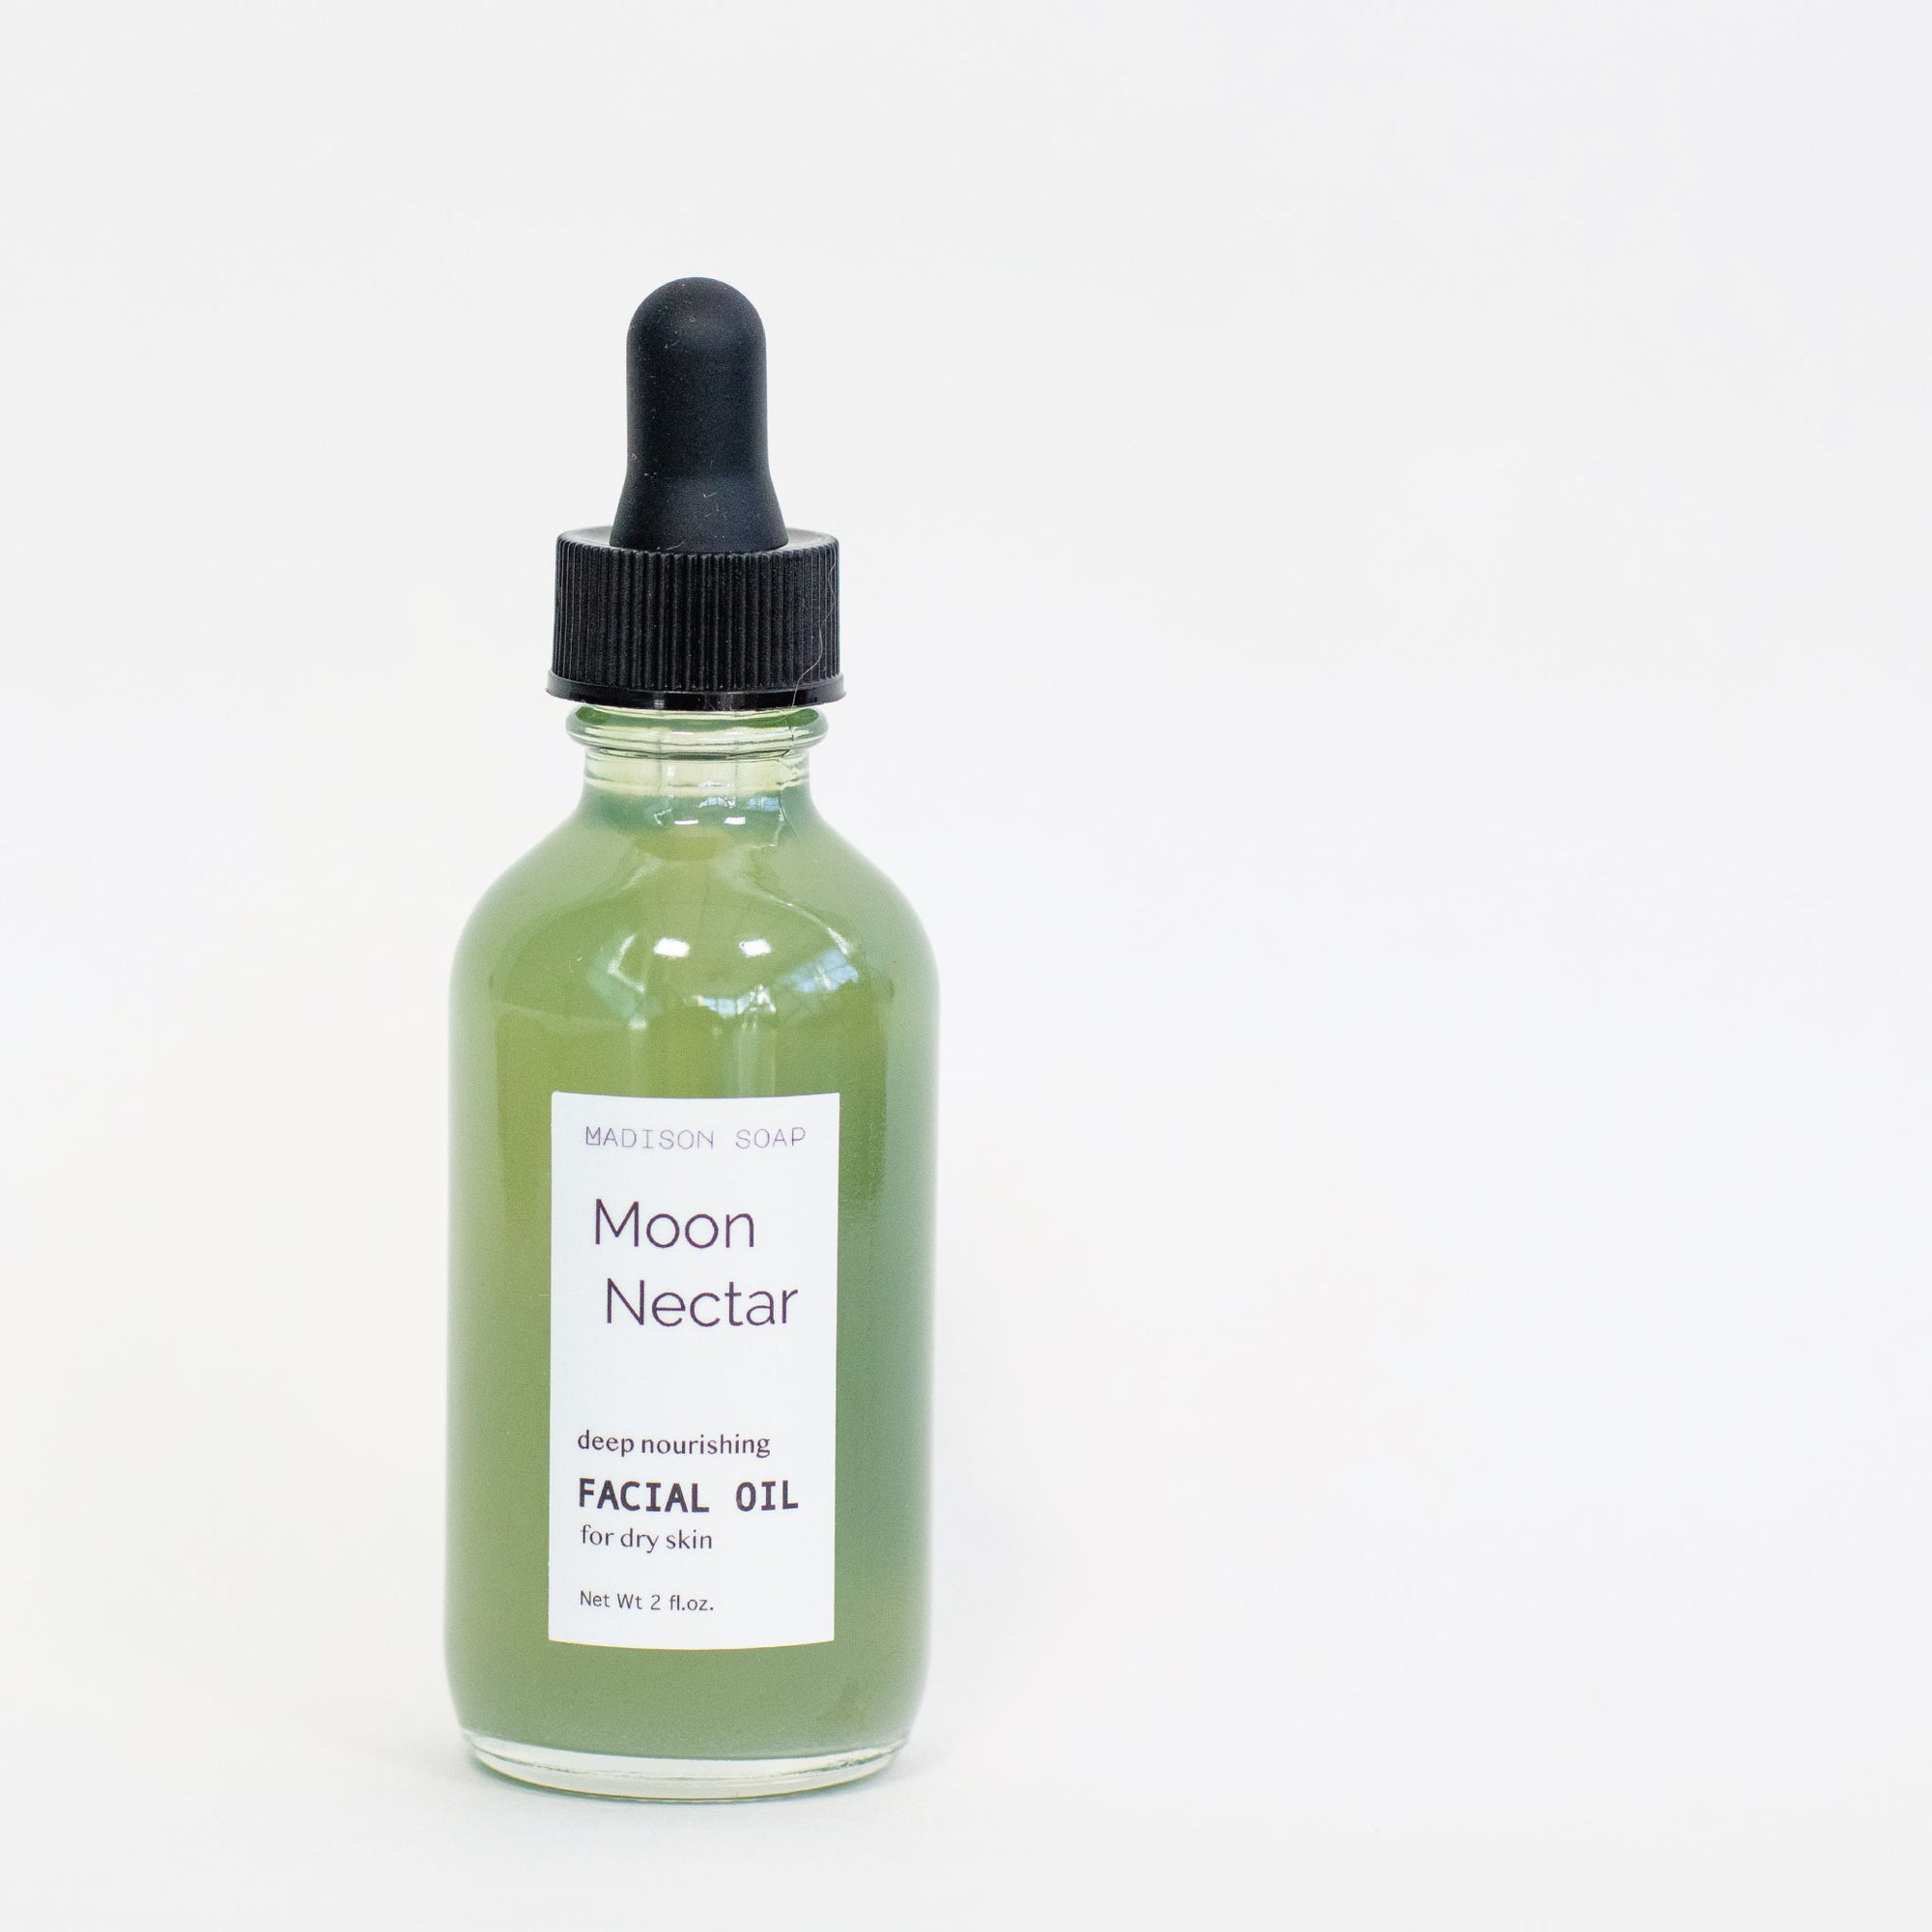 Moon Nectar Facial Oil Facial Oil by Madison Soap Company from Madison Soap Company